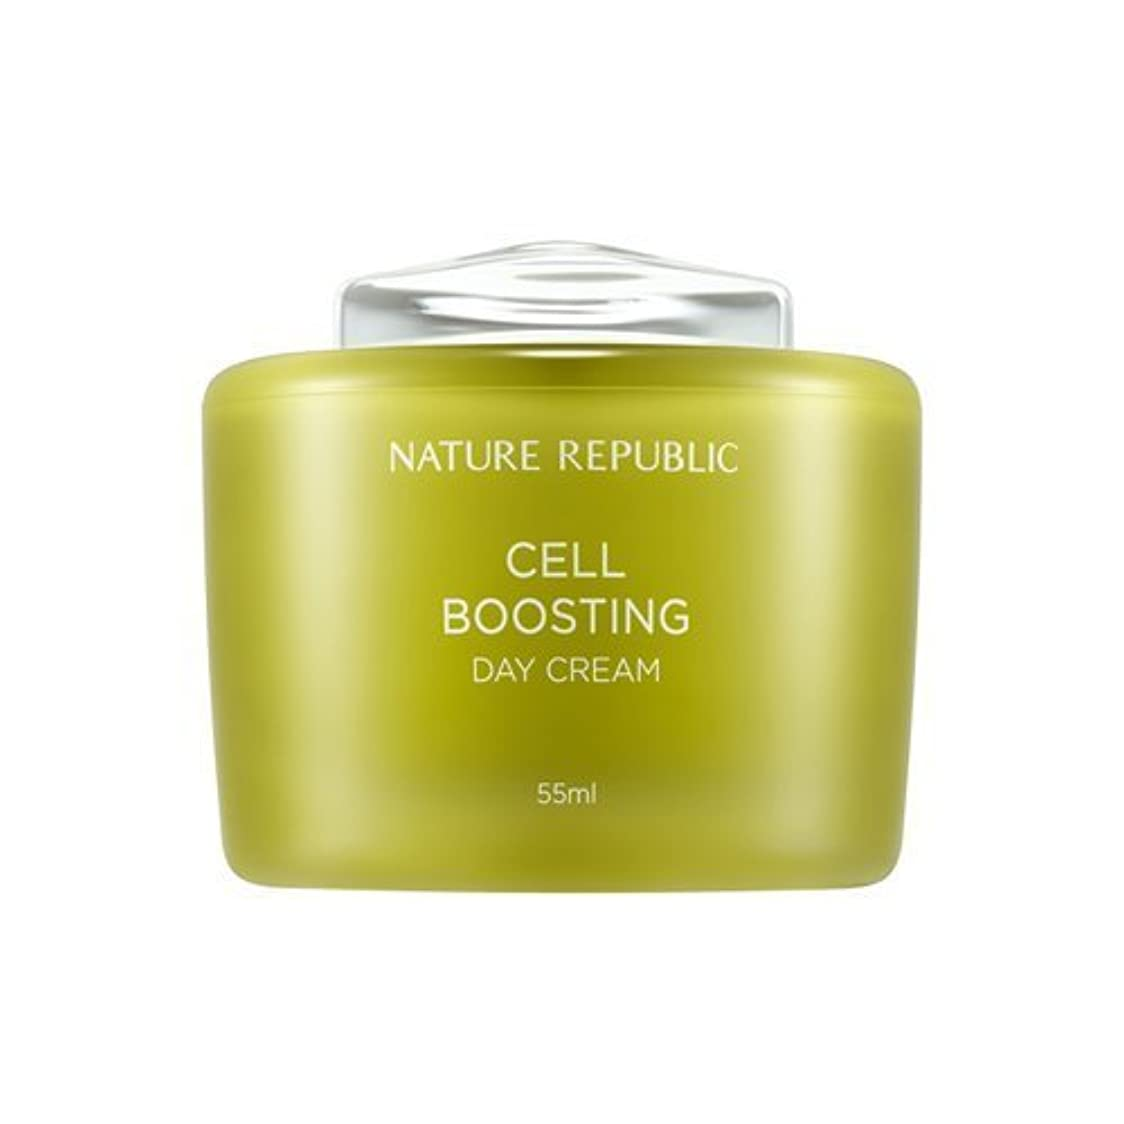 州ブラウス焦がすNATUREREPUBLIC Cell boosting Day Cream